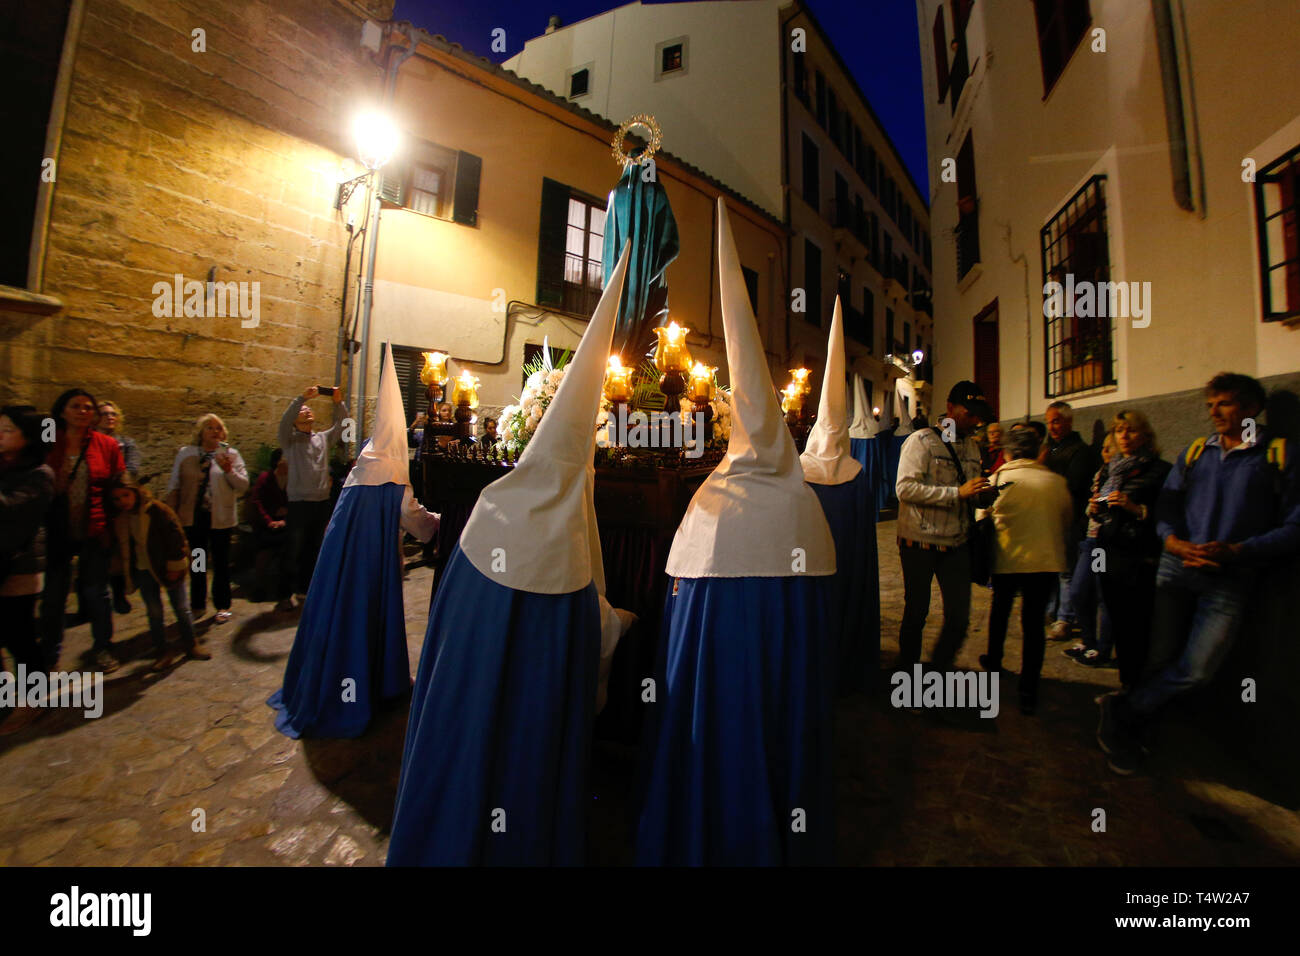 Palma de Mallorca / Spain - April 17 2019: Penitents take part in the procession of Saint christ of Santa Cruz during easter holy week in the Spanish  Stock Photo